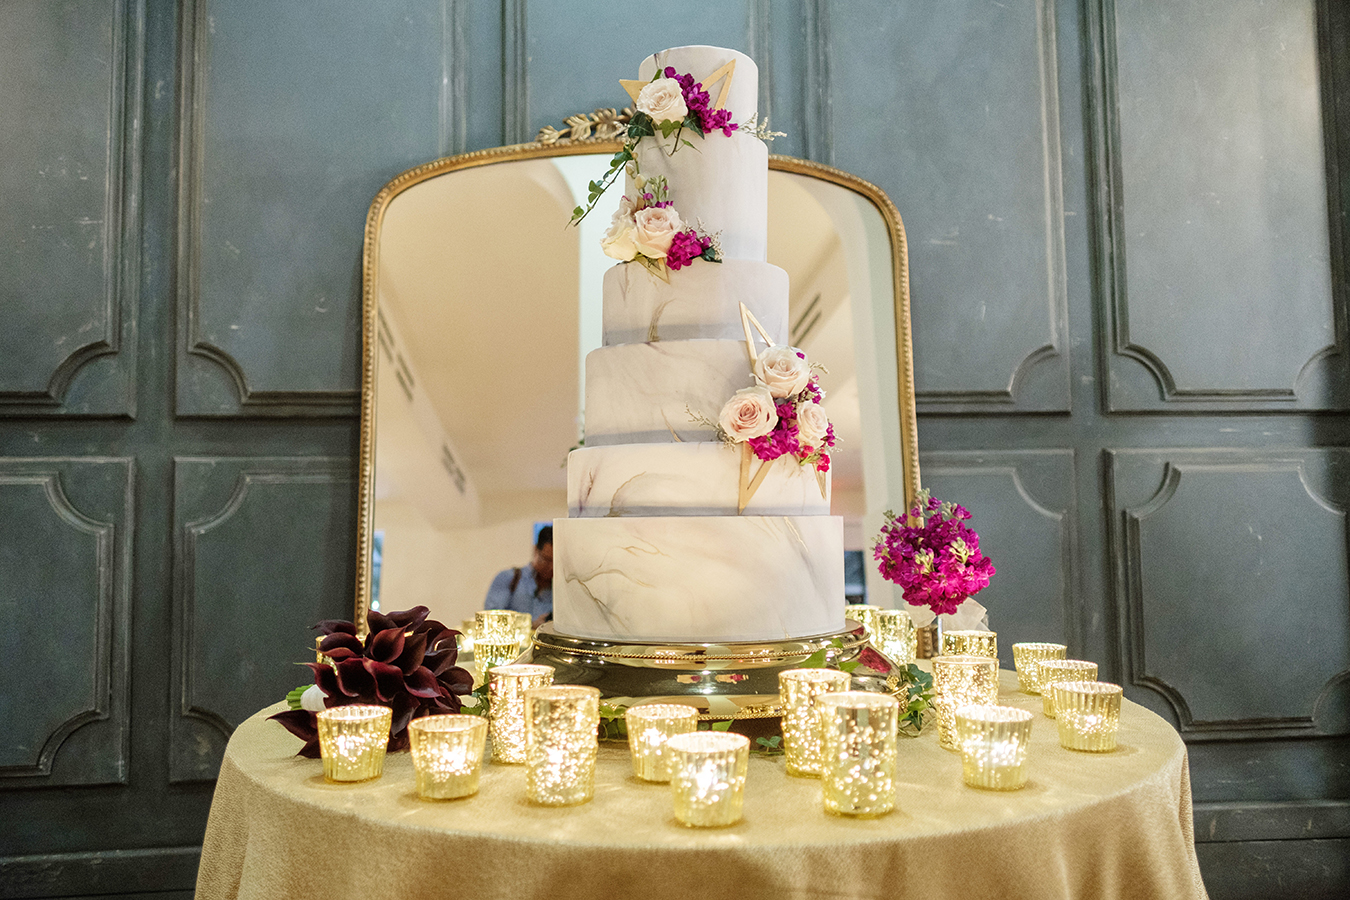 The wedding cake, designed by Chasing Wang, featured six tiers covered with marbled fondant and accented with fresh flowers and geometric decorations.